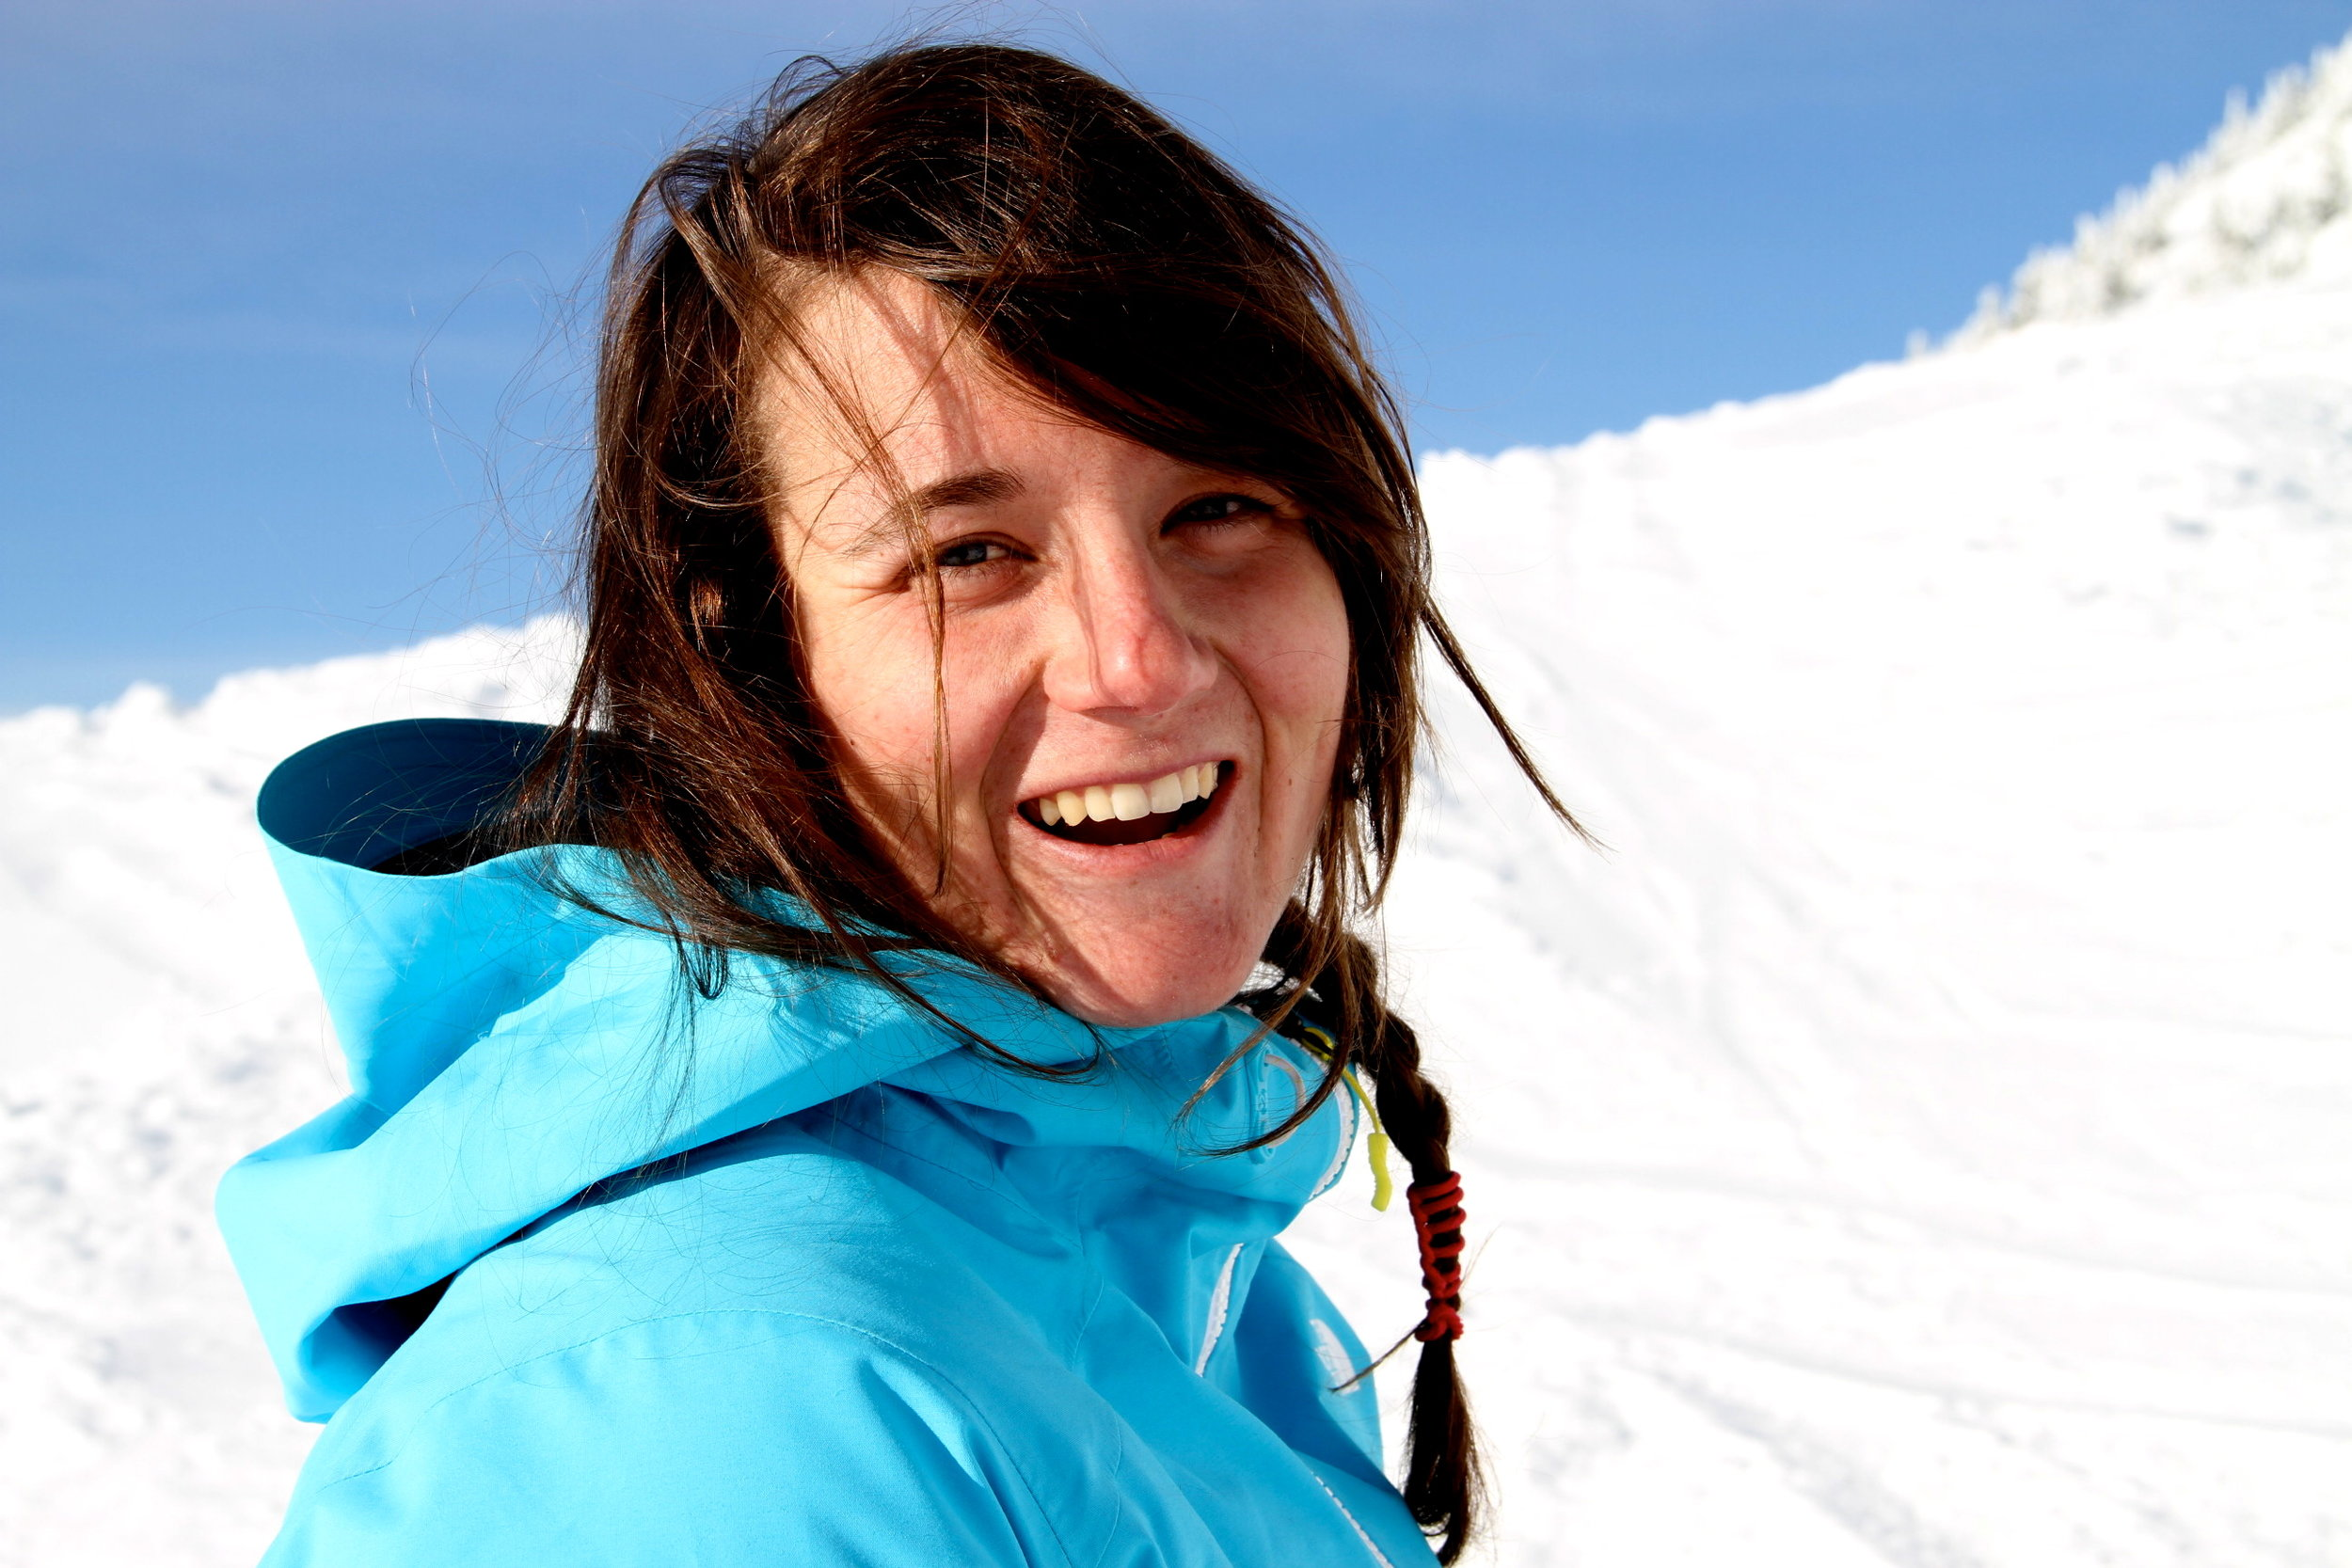 Leah Evans   Leah is the founder of Girls Do Ski. As a passionate and professional skier herself, her dream was to get more female skiers on the slopes and connect those already out there. Leah continuously strives to get out into the mountains and help others do the same.